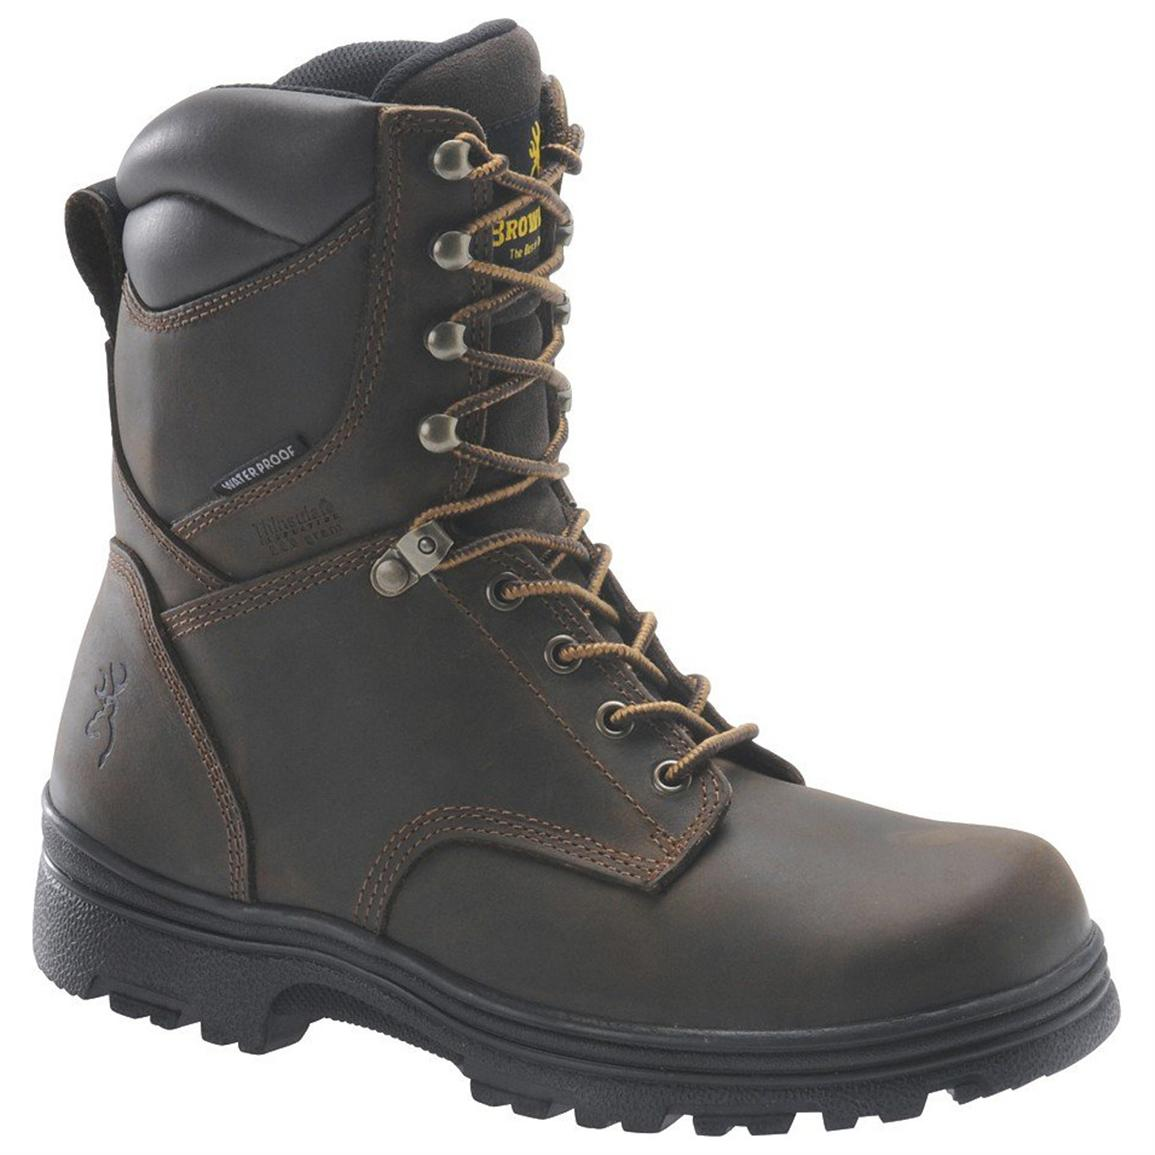 Men's Browning® BR9318 Insulated Waterproof Boots